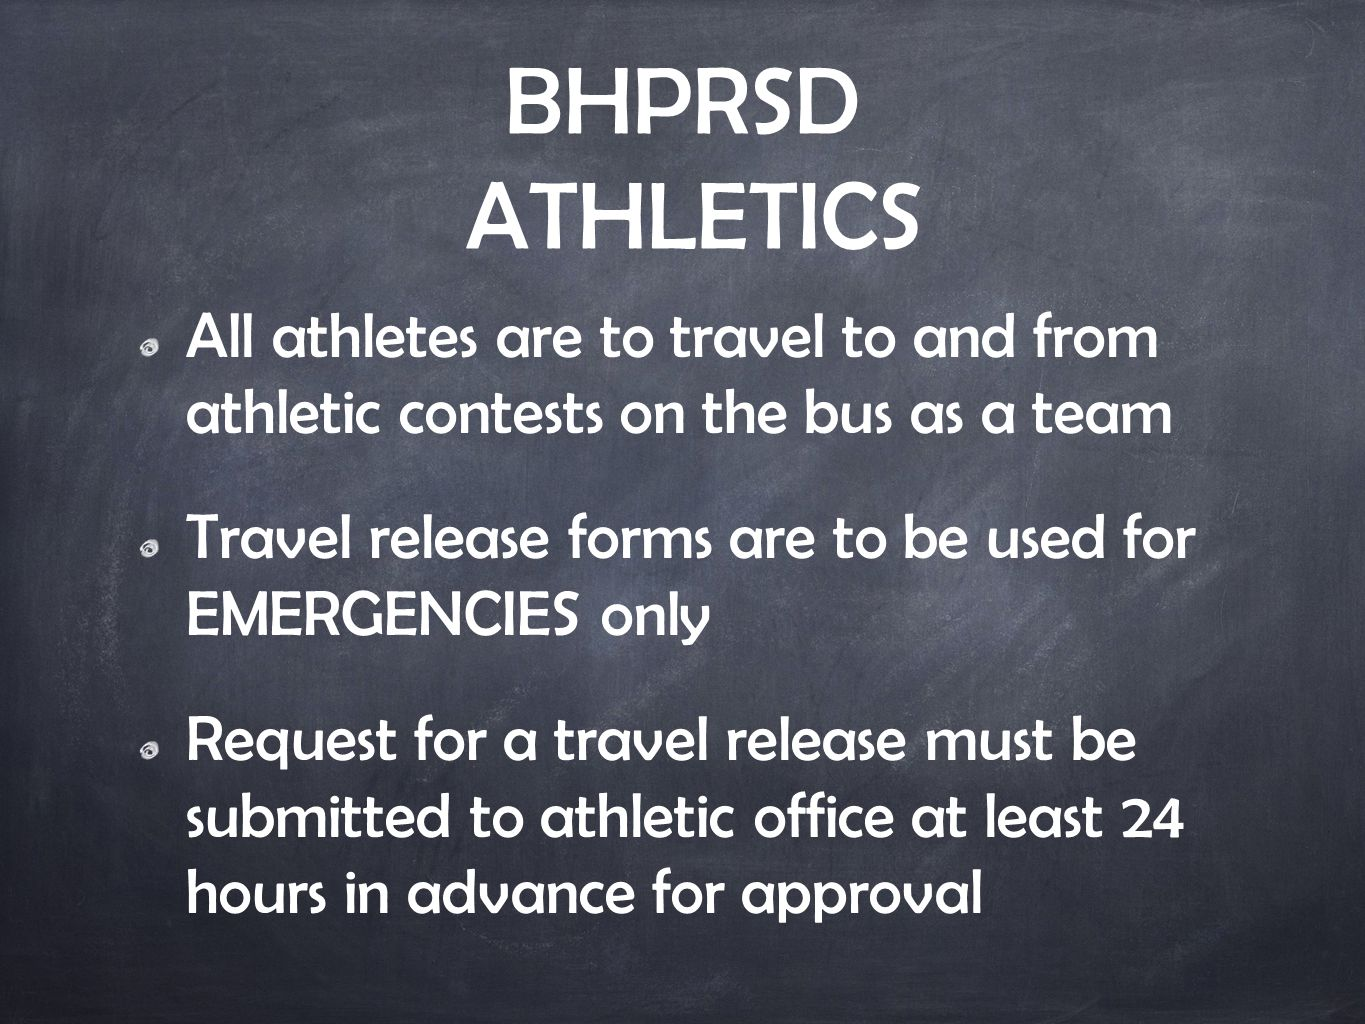 BHPRSD ATHLETICS All athletes are to travel to and from athletic contests on the bus as a team Travel release forms are to be used for EMERGENCIES only Request for a travel release must be submitted to athletic office at least 24 hours in advance for approval